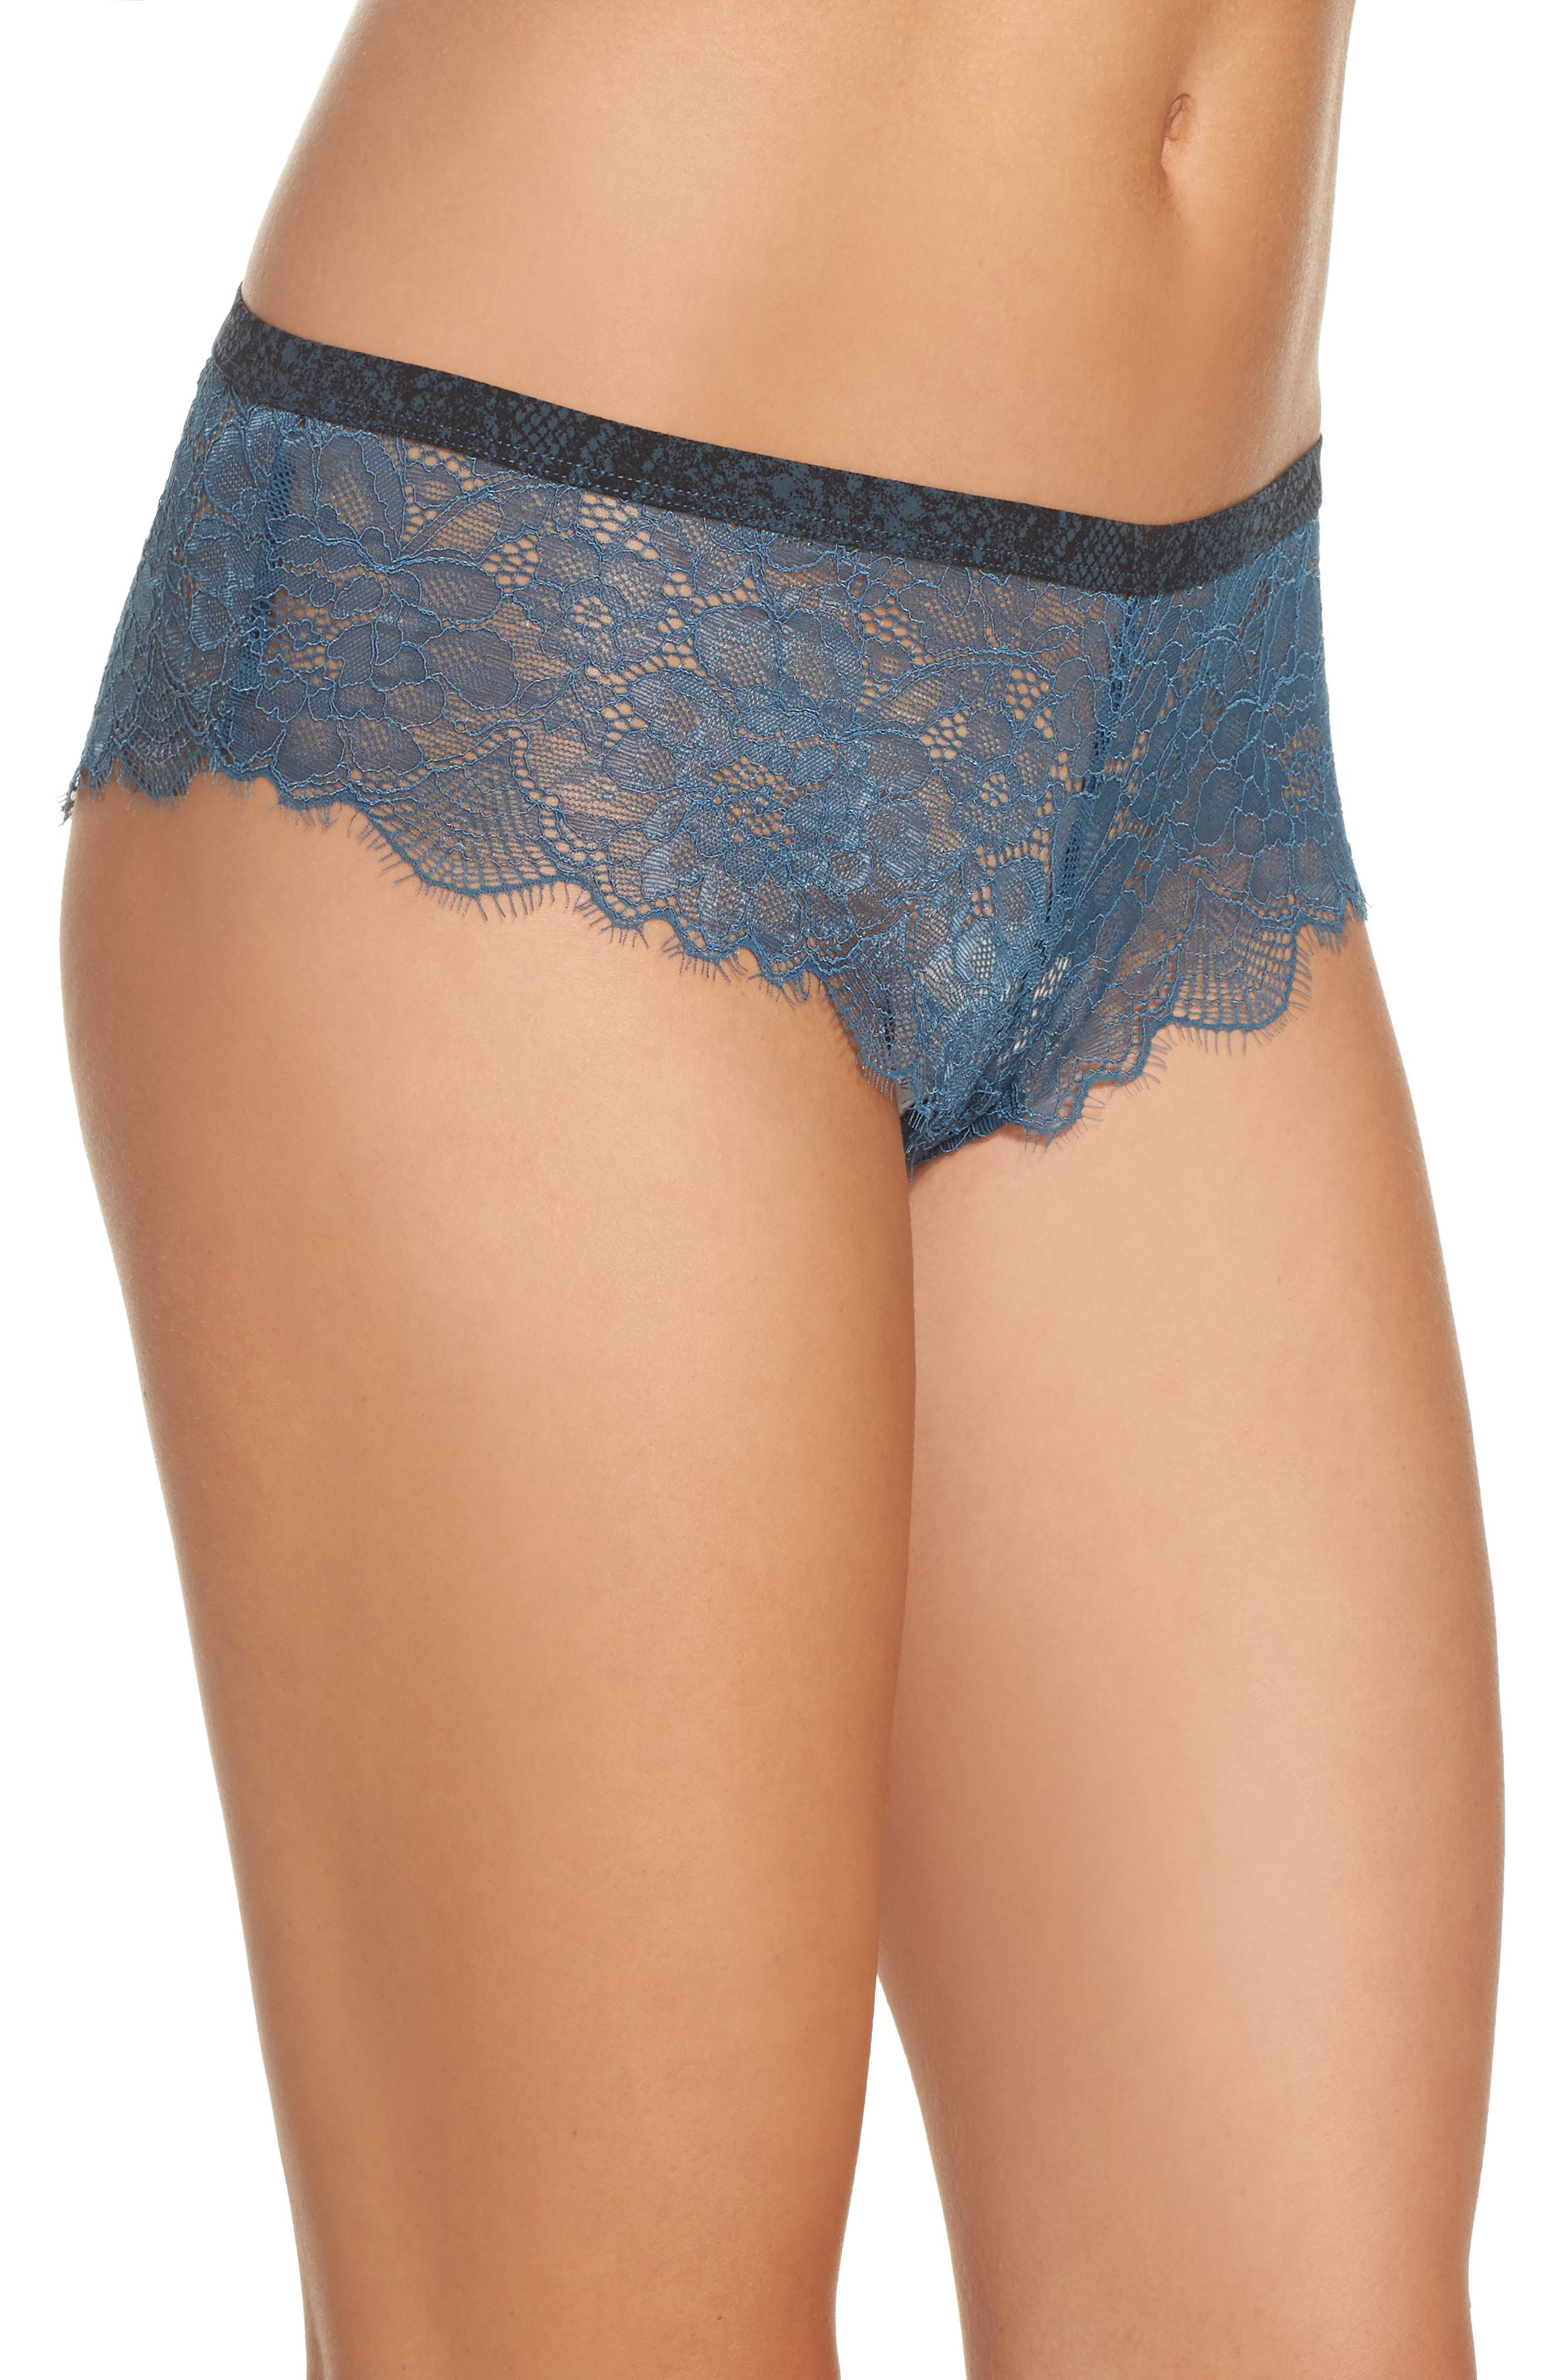 Dragonfly Lace Panties,                             Alternate thumbnail 8, color,